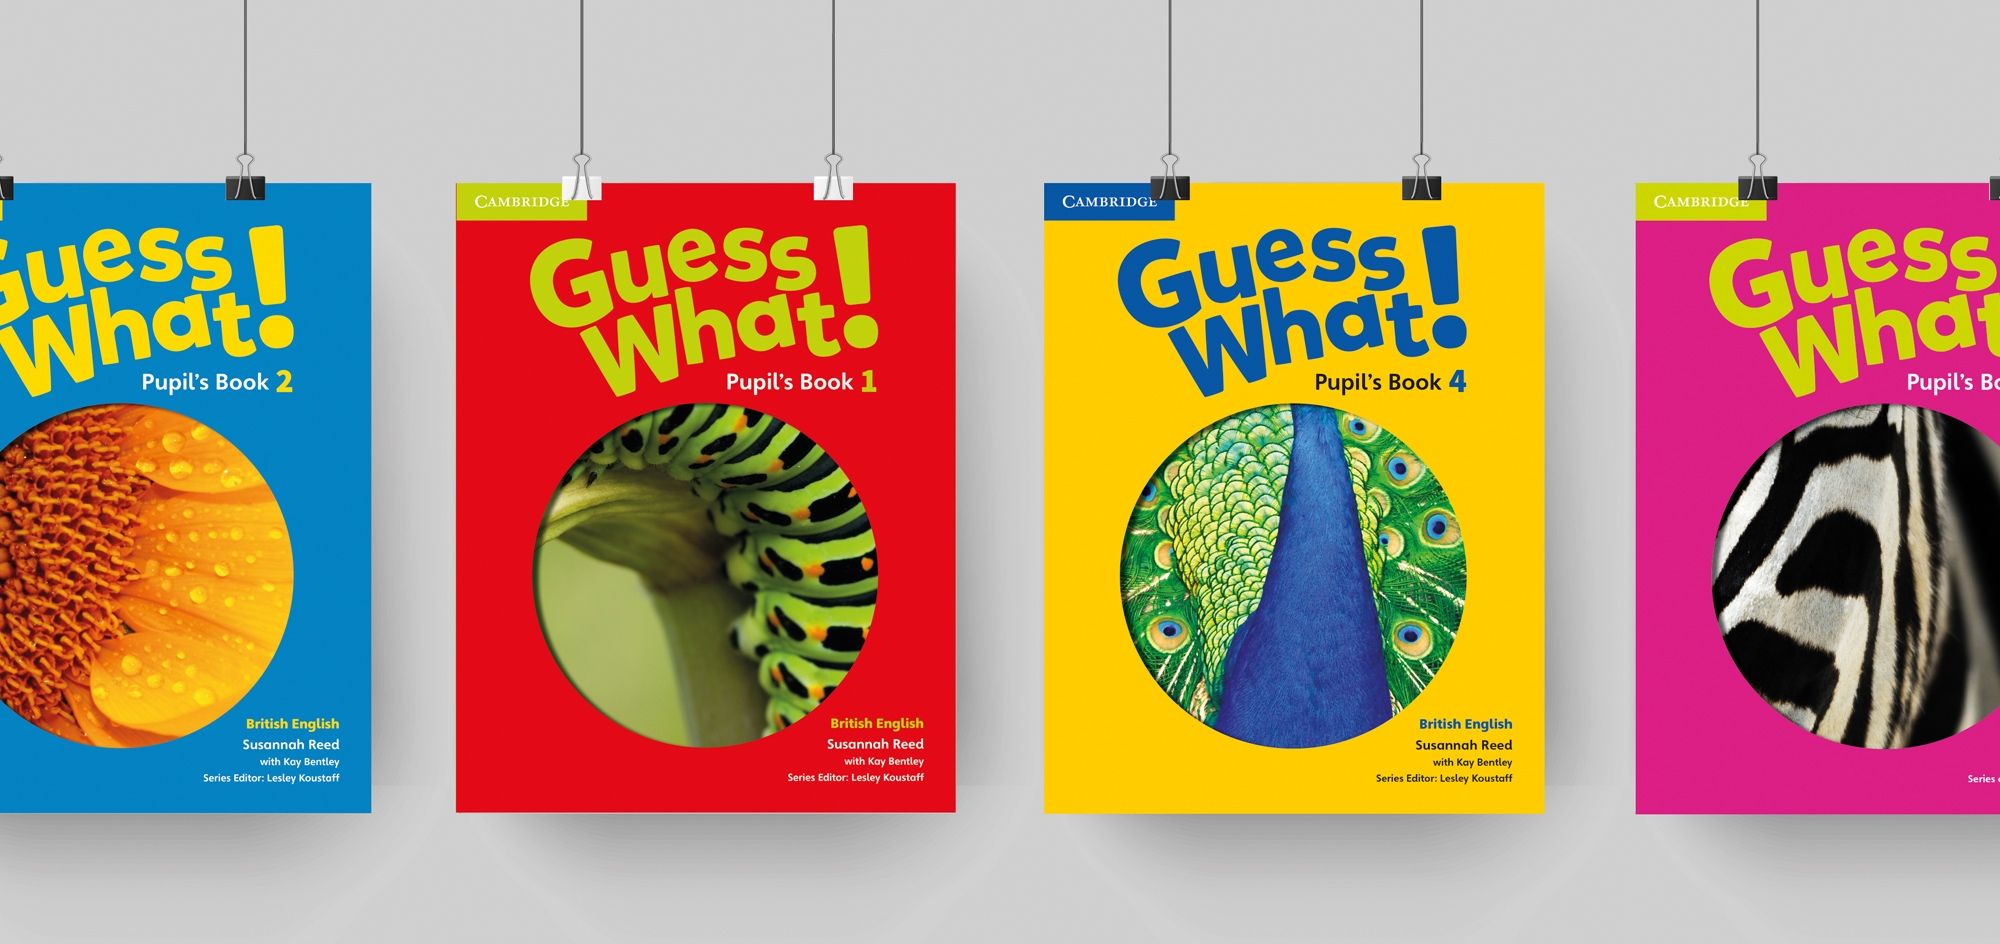 Blooberry Design – Cambridge University Press – Guess What Covers – Publishing design